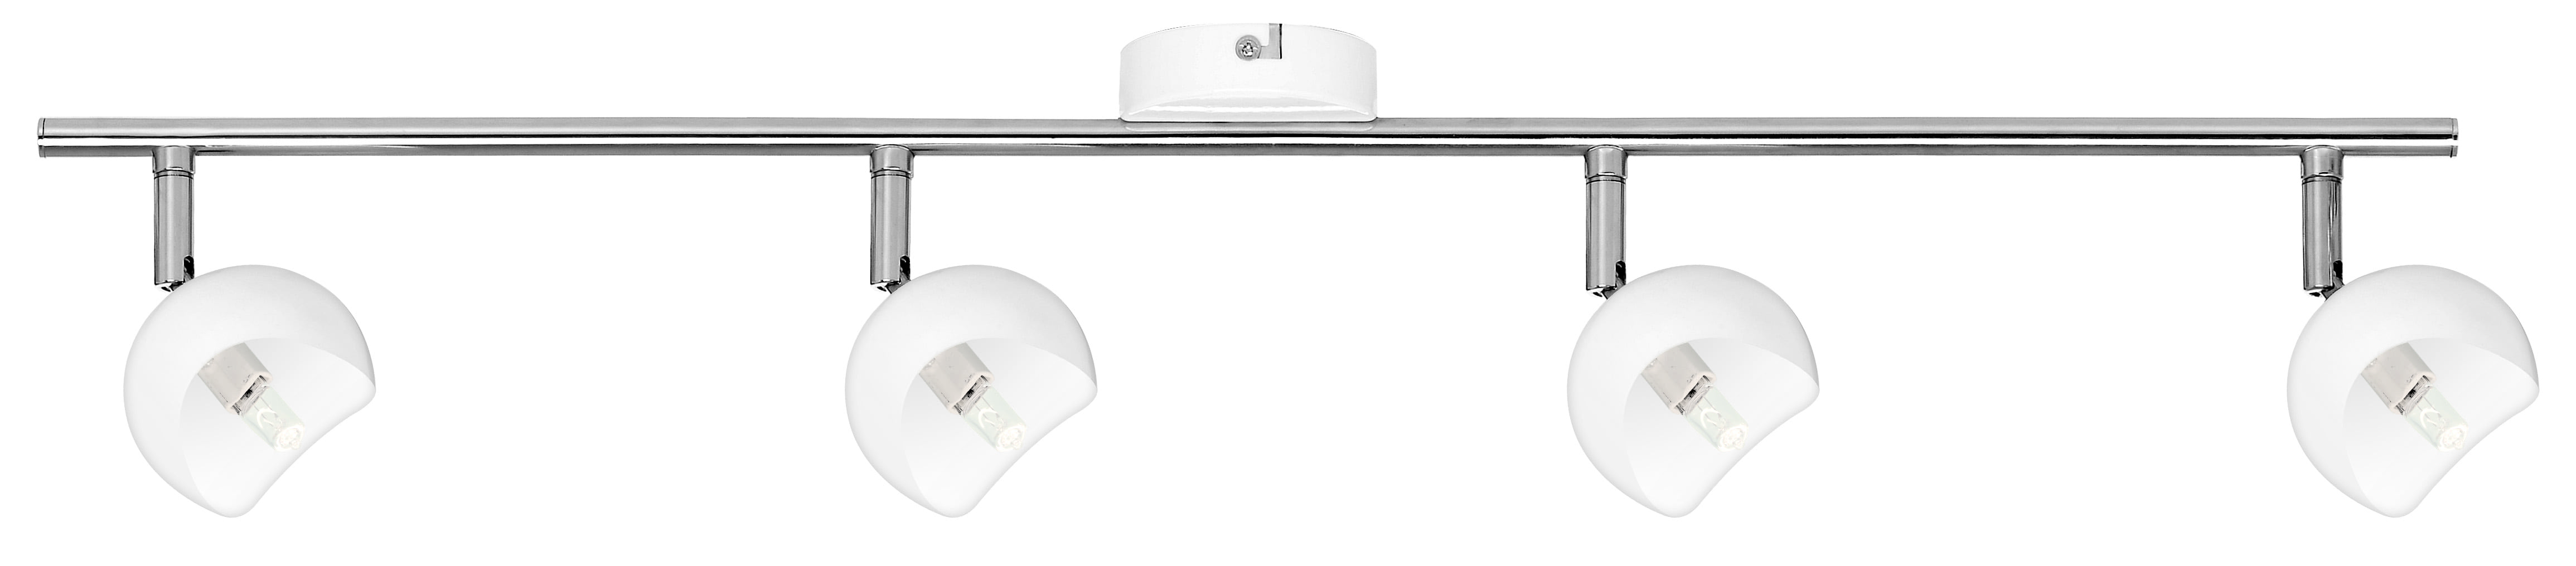 Wall ceiling molding Kita in white G9 28W